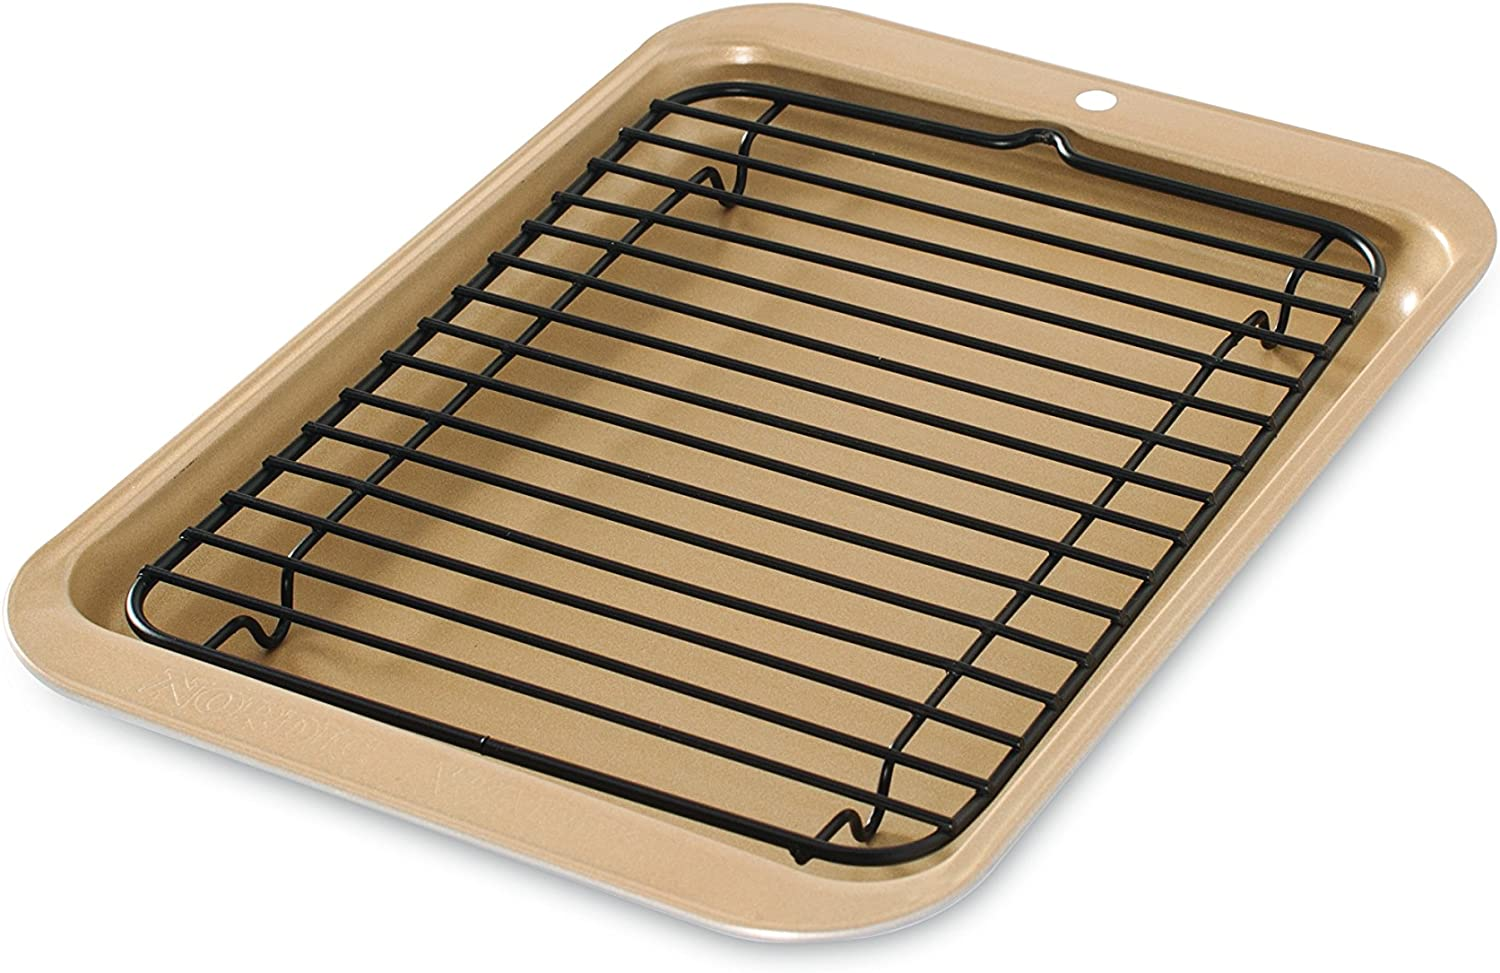 B00004RFS8 Nordic Ware 42210 Toaster Oven 2-Piece Broiler, Metalic Gold 81Ma96924dL